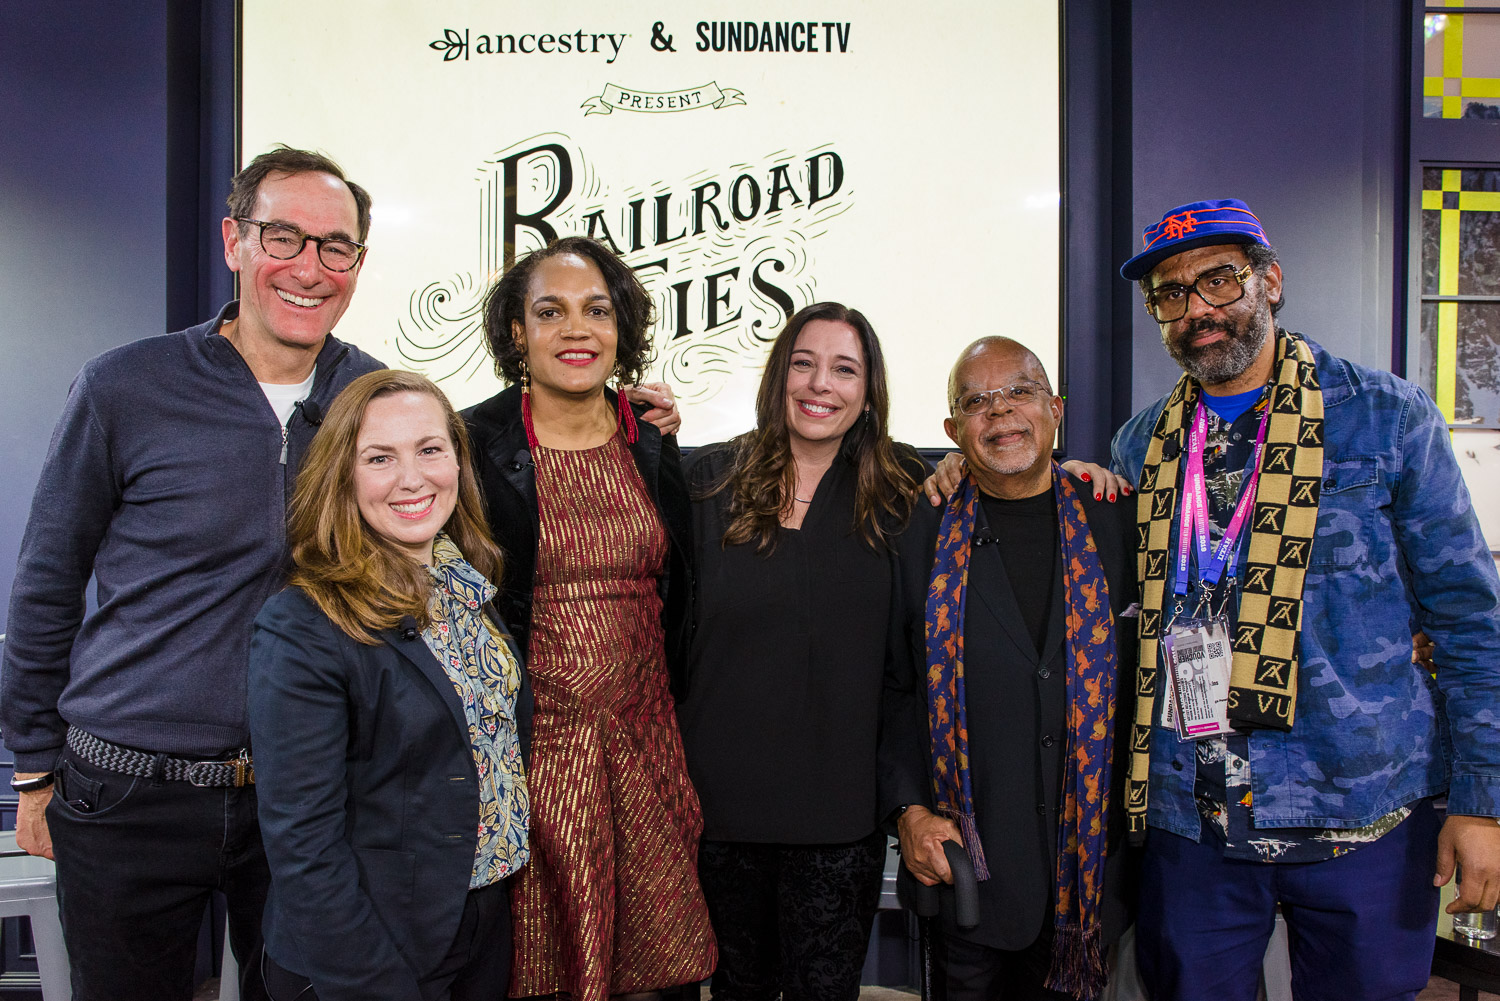 Railroad Ties panel at Sundance